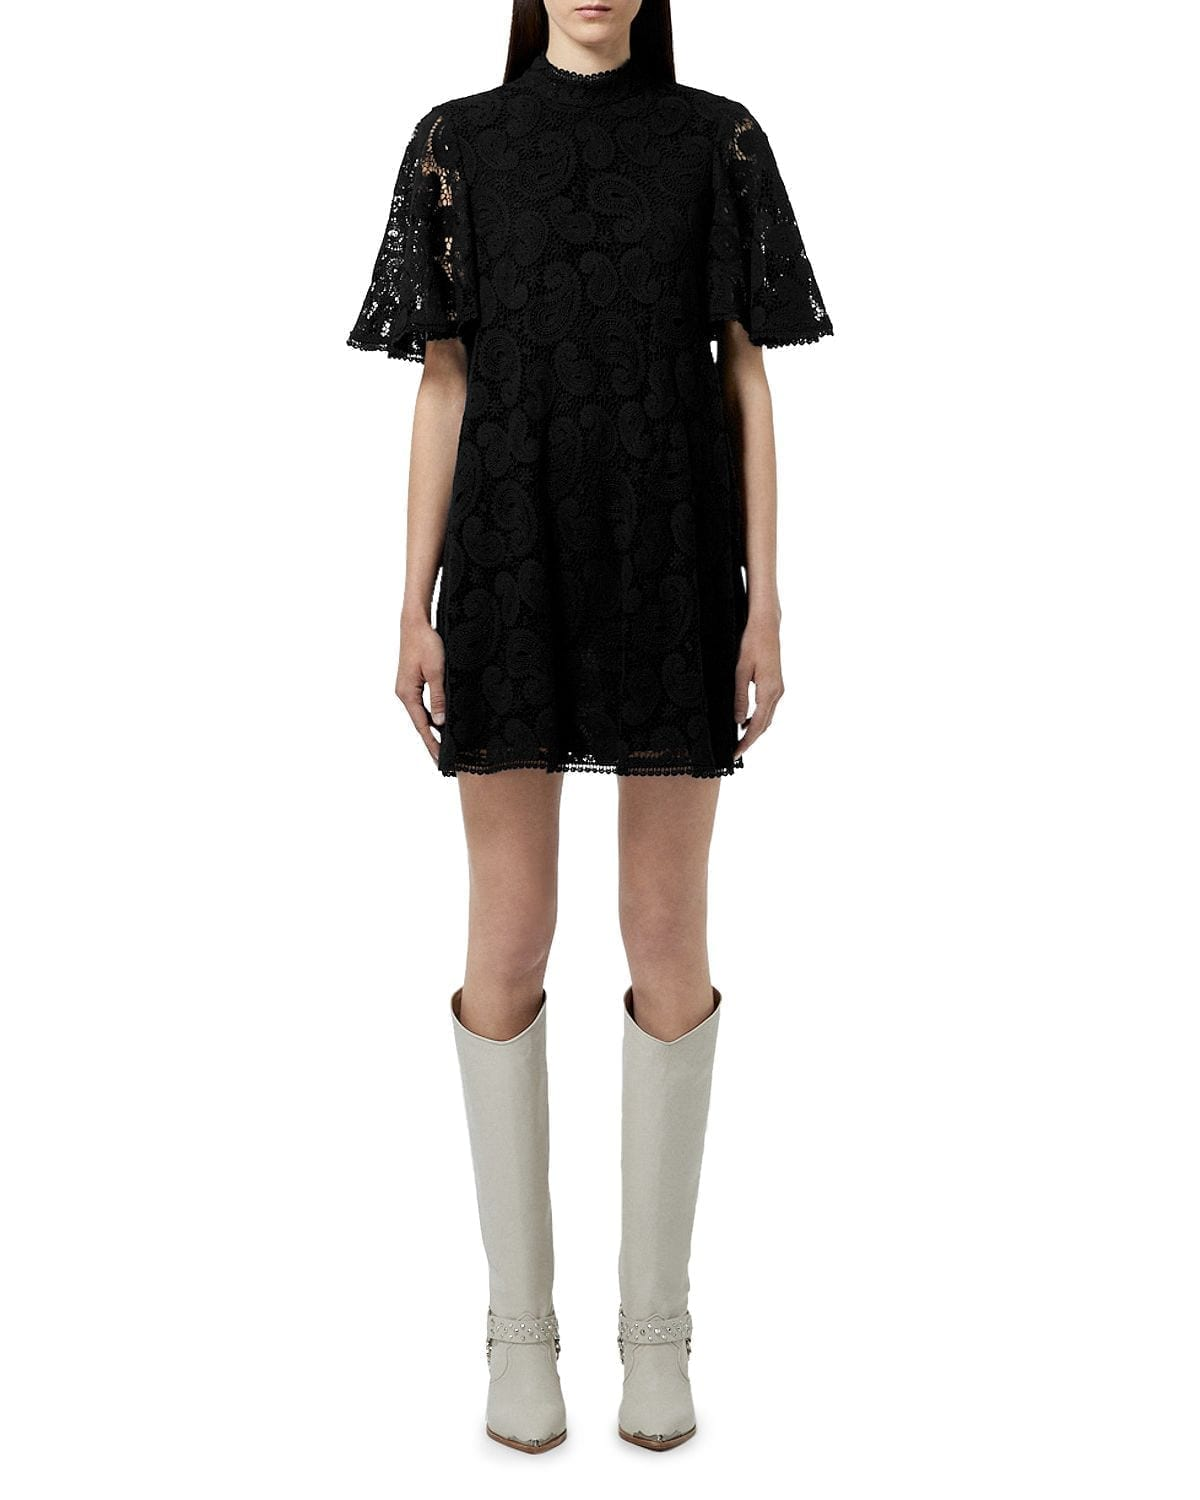 THE KOOPLES Mini Lace Dress